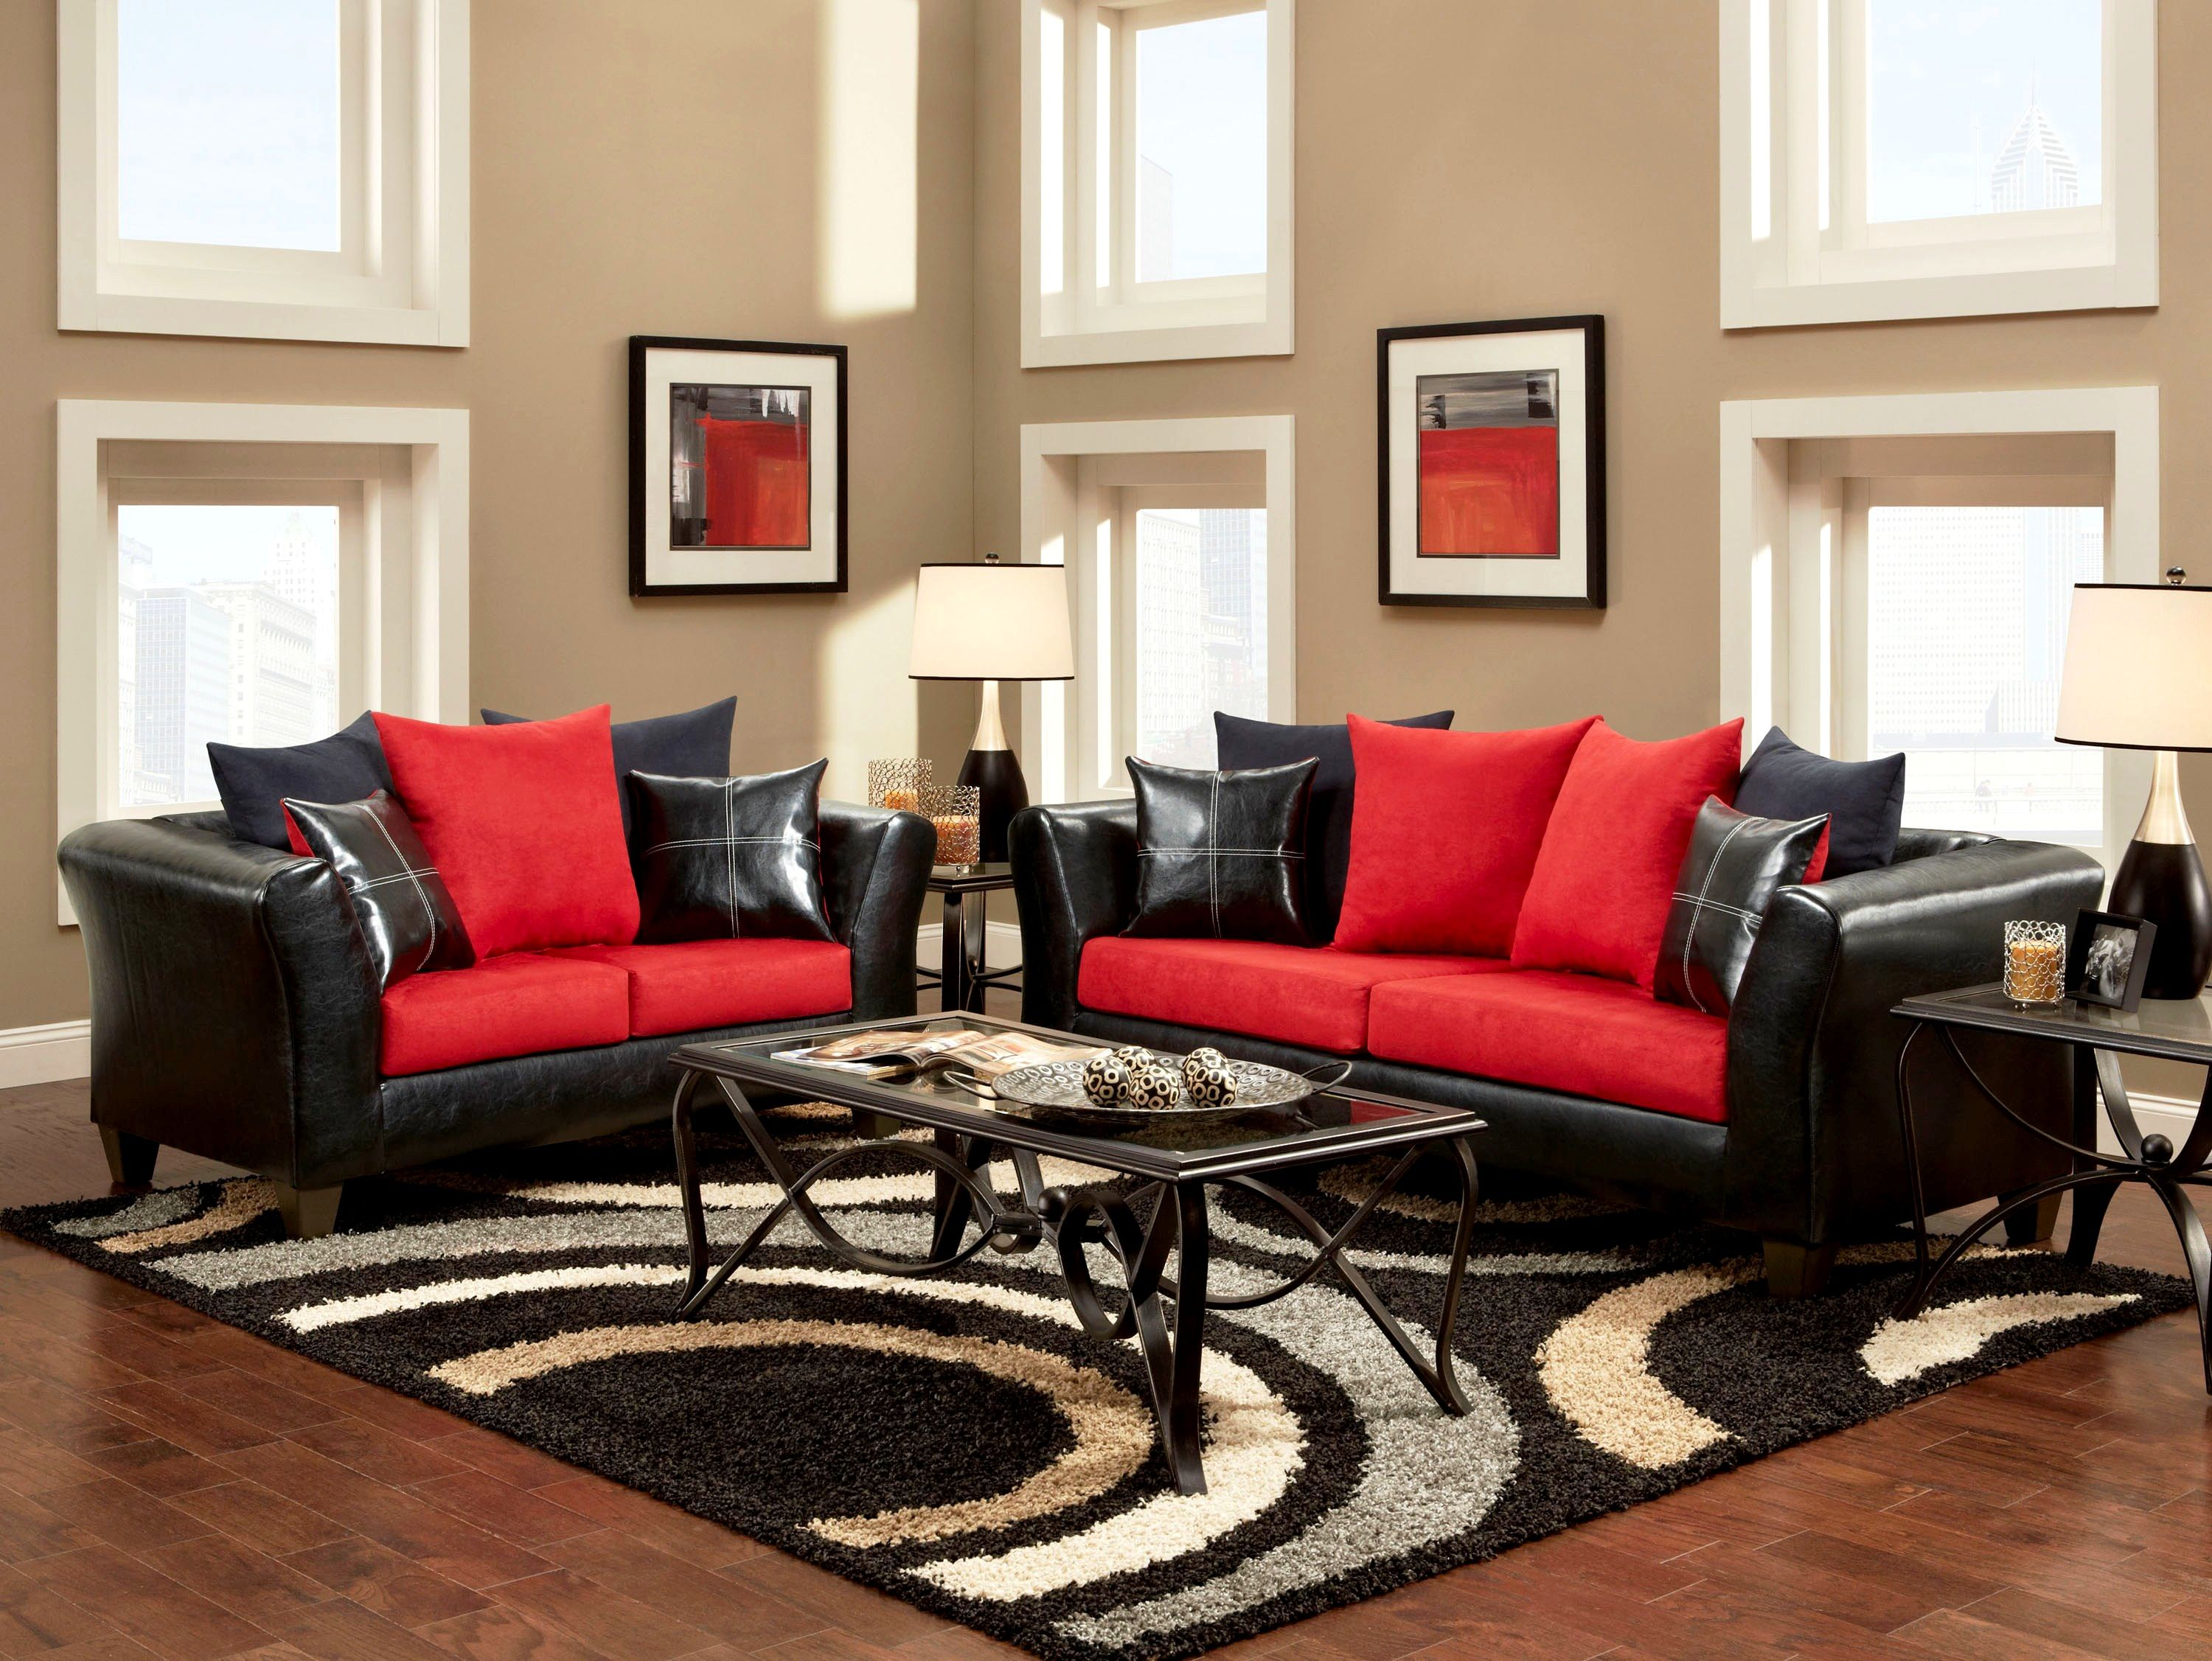 10 Best Red Rug Living Room Ideas